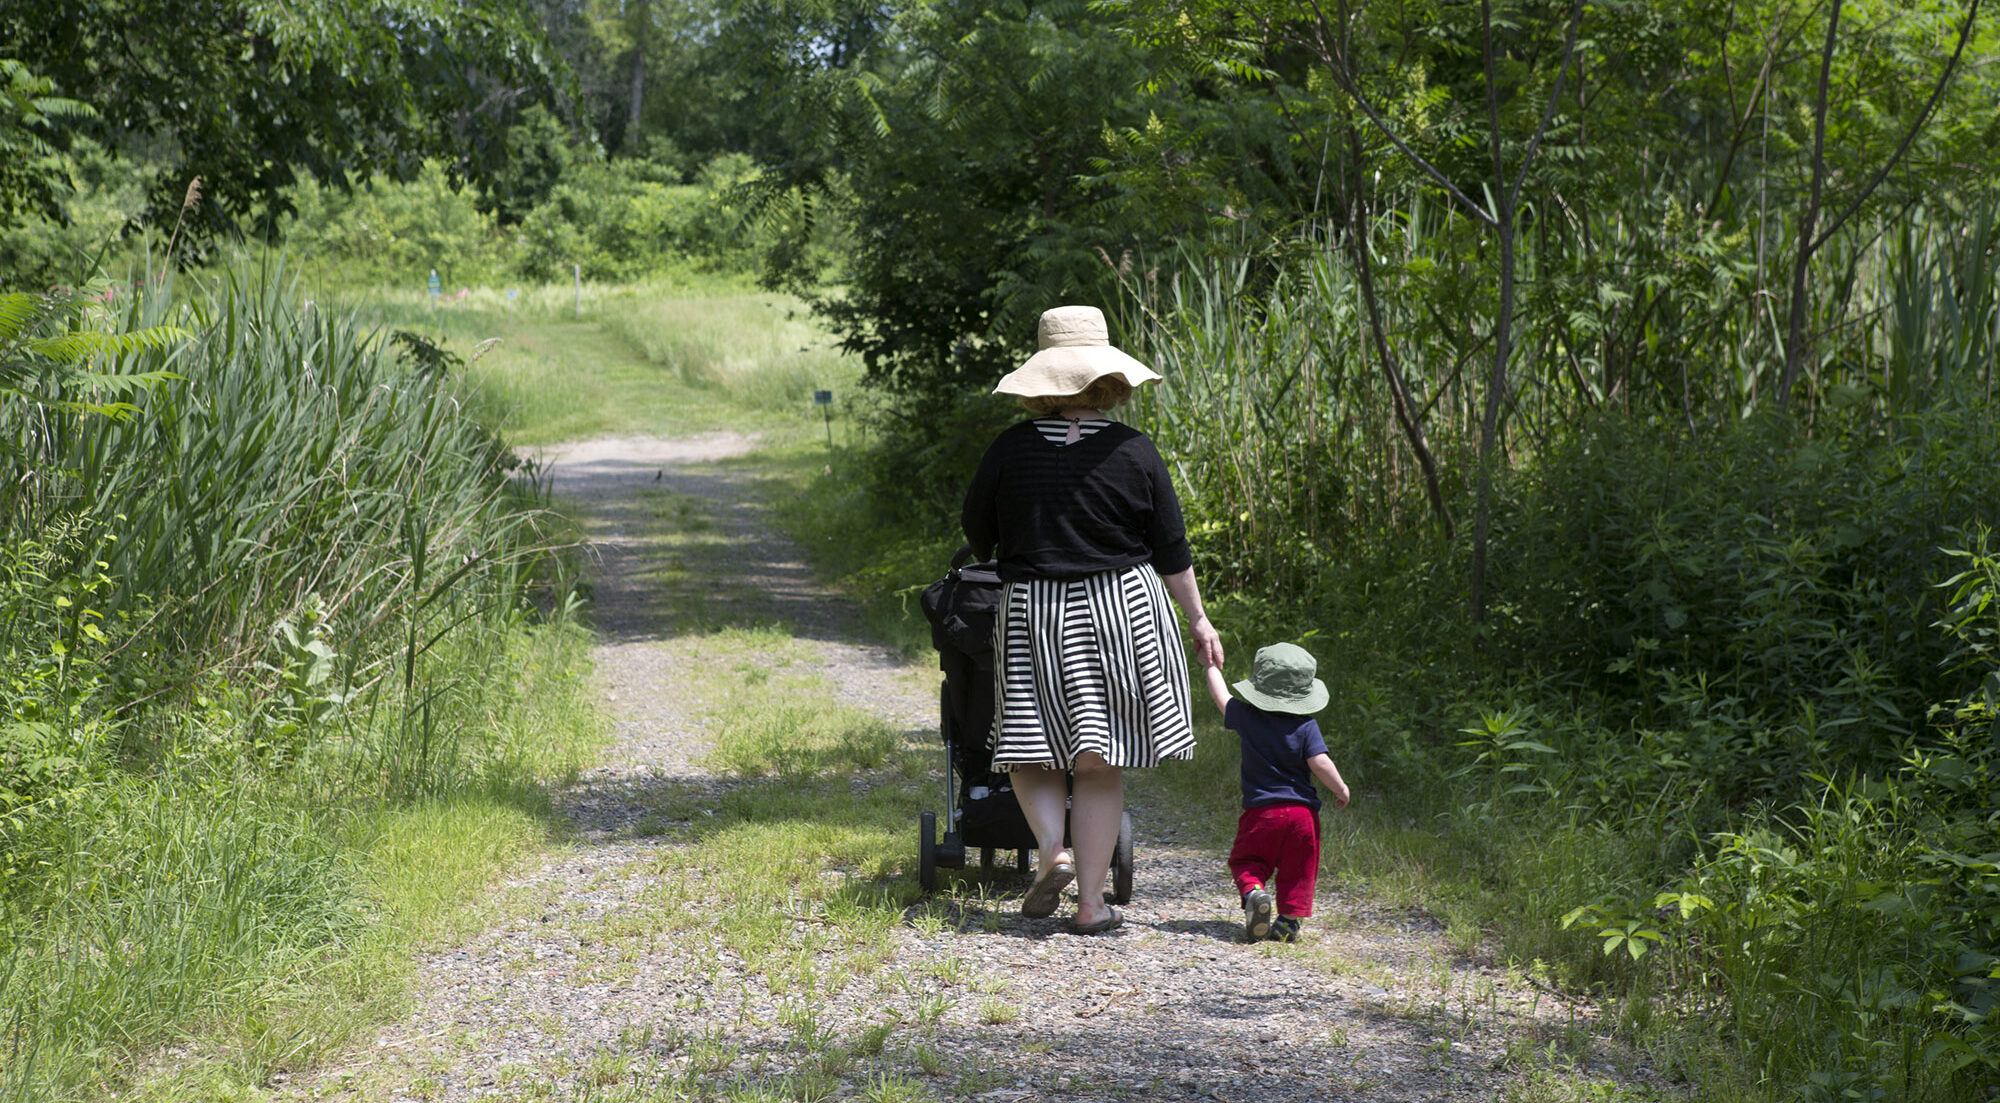 Woman walking with young child